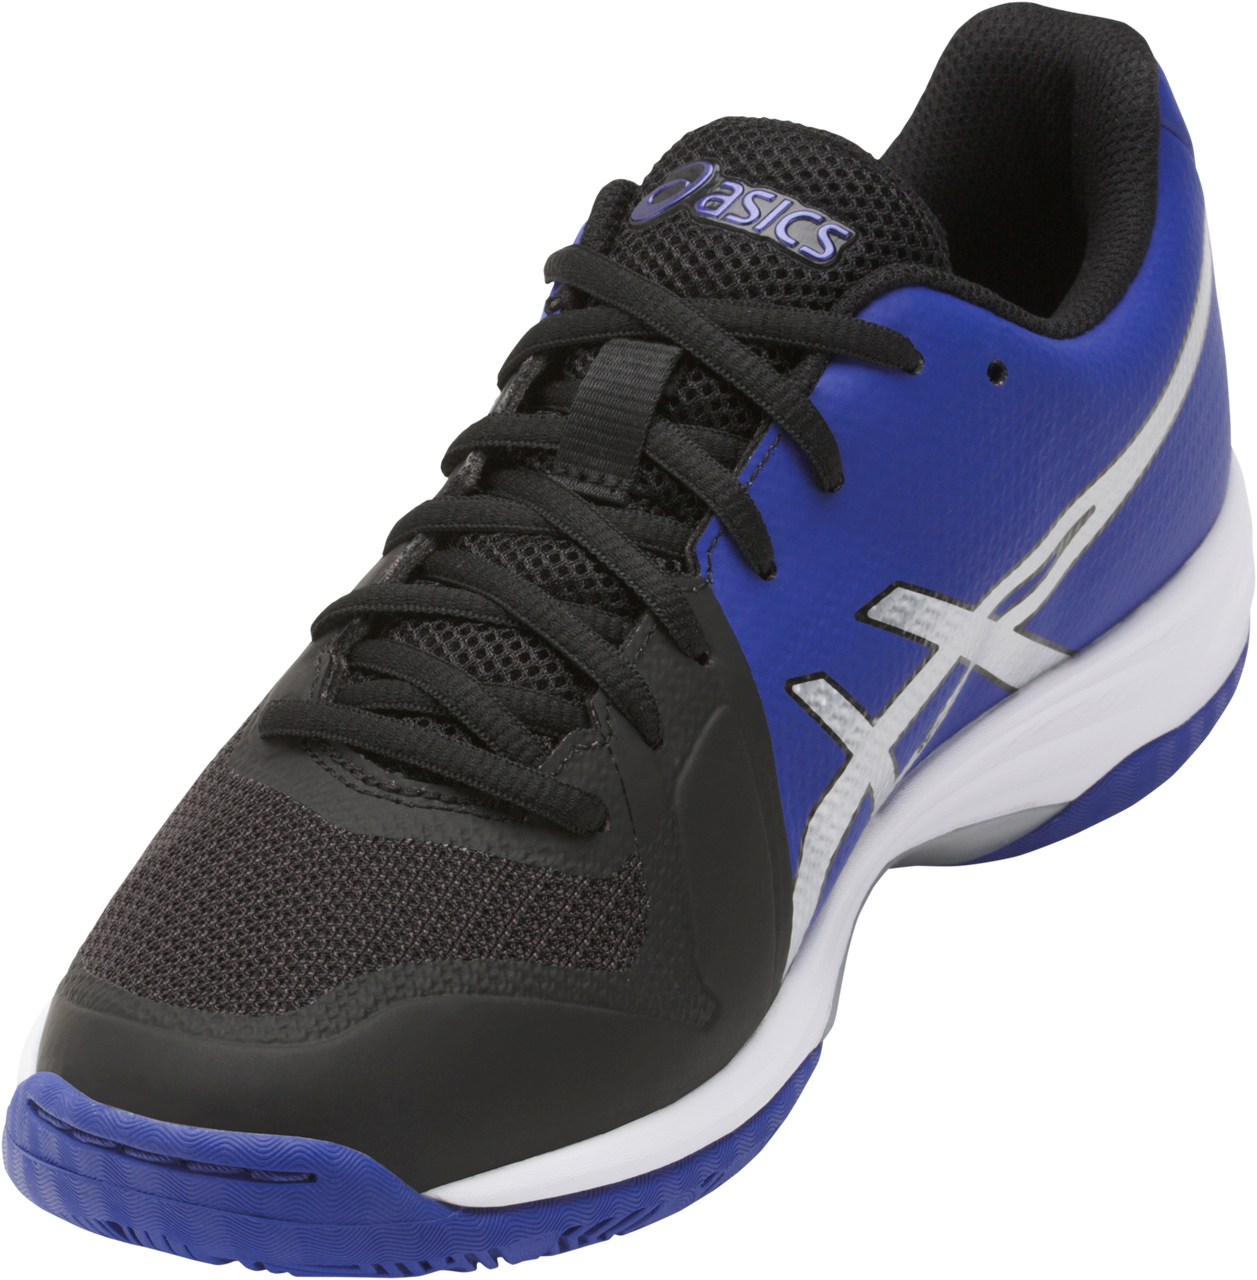 Asics Women's Gel-Tactic 2 - Black/Blue/Silver